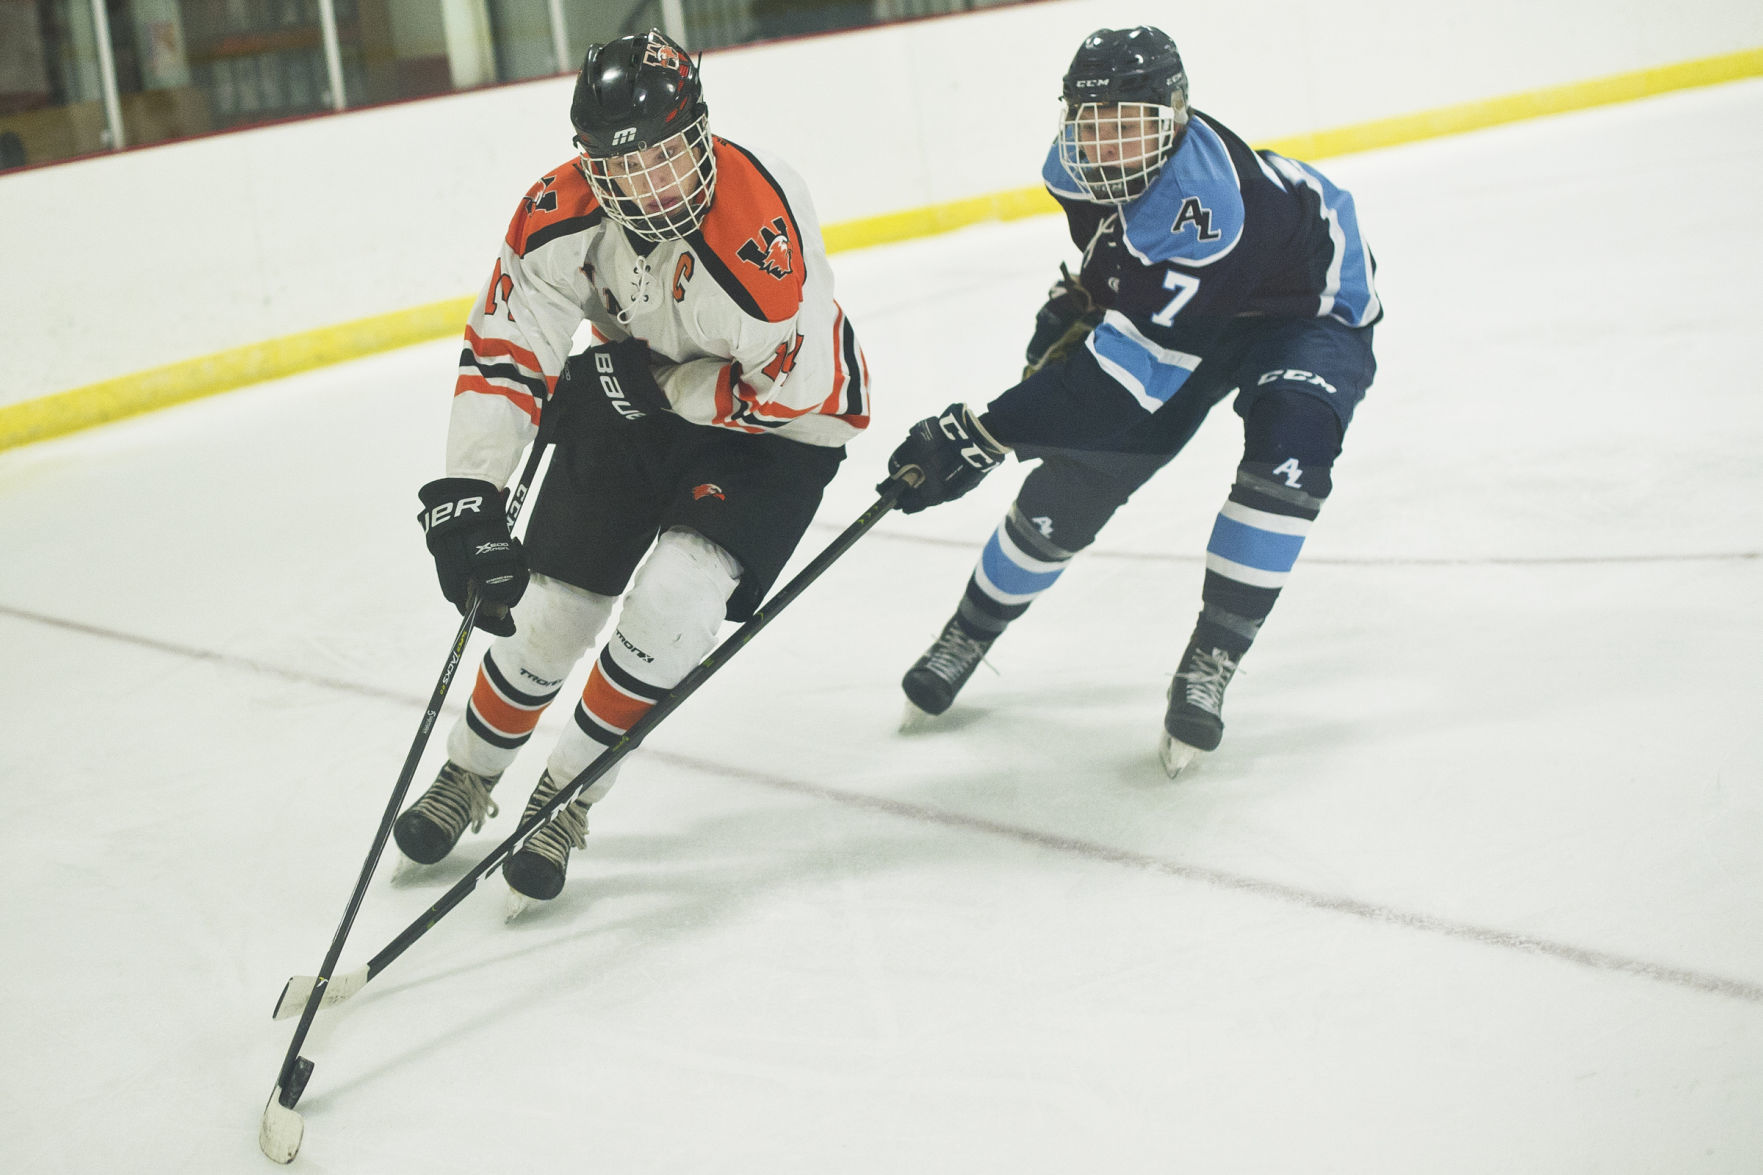 MN H.S.: Winhawks Can't Capitalize On Early Opportunities In Loss To Albert Lea | High School